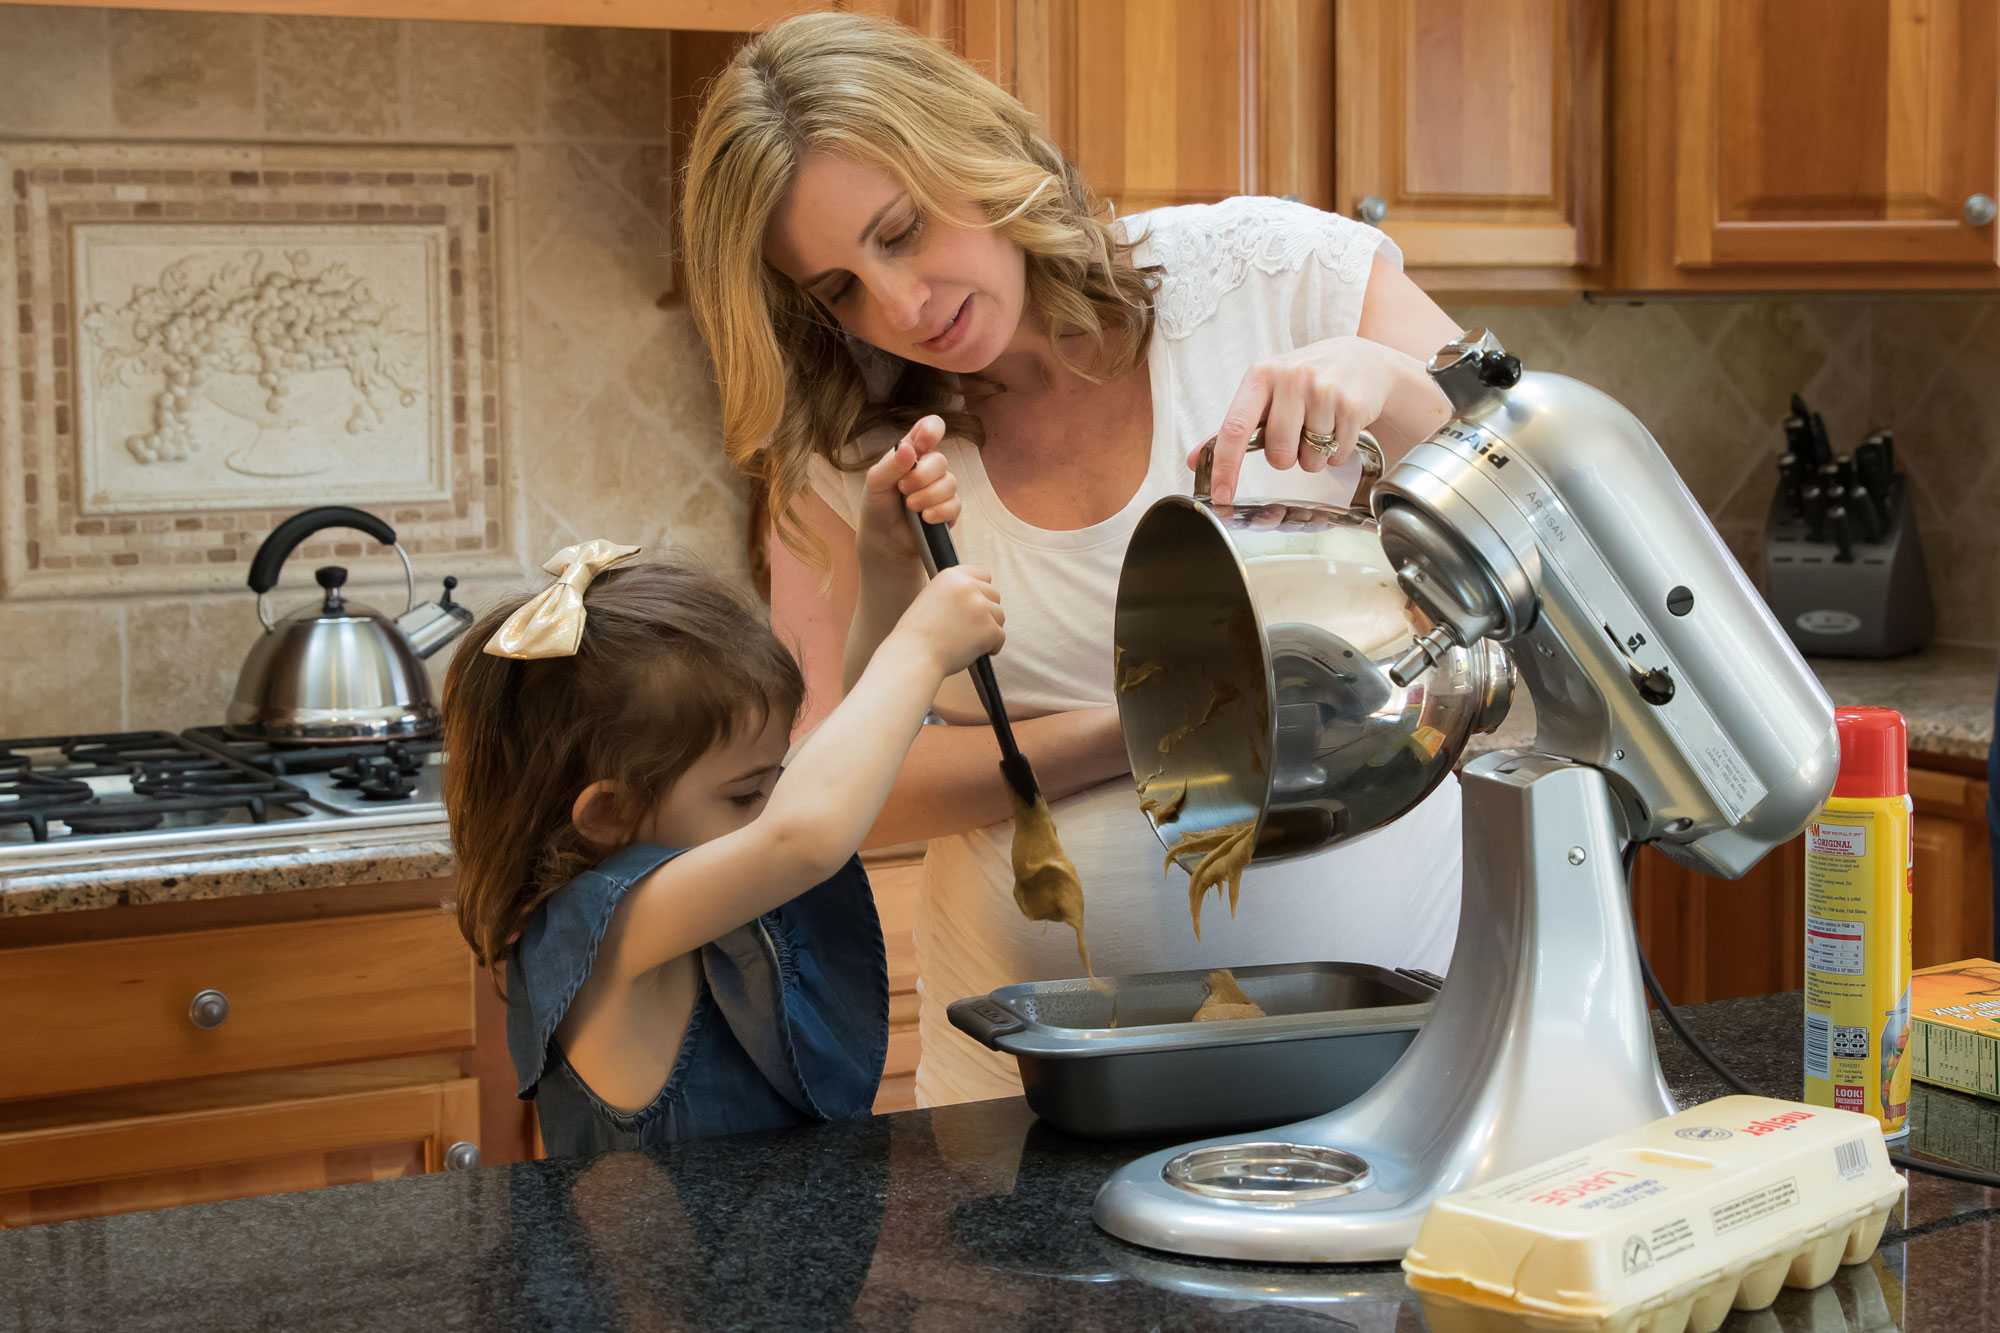 mother-daughter-baking-maternity